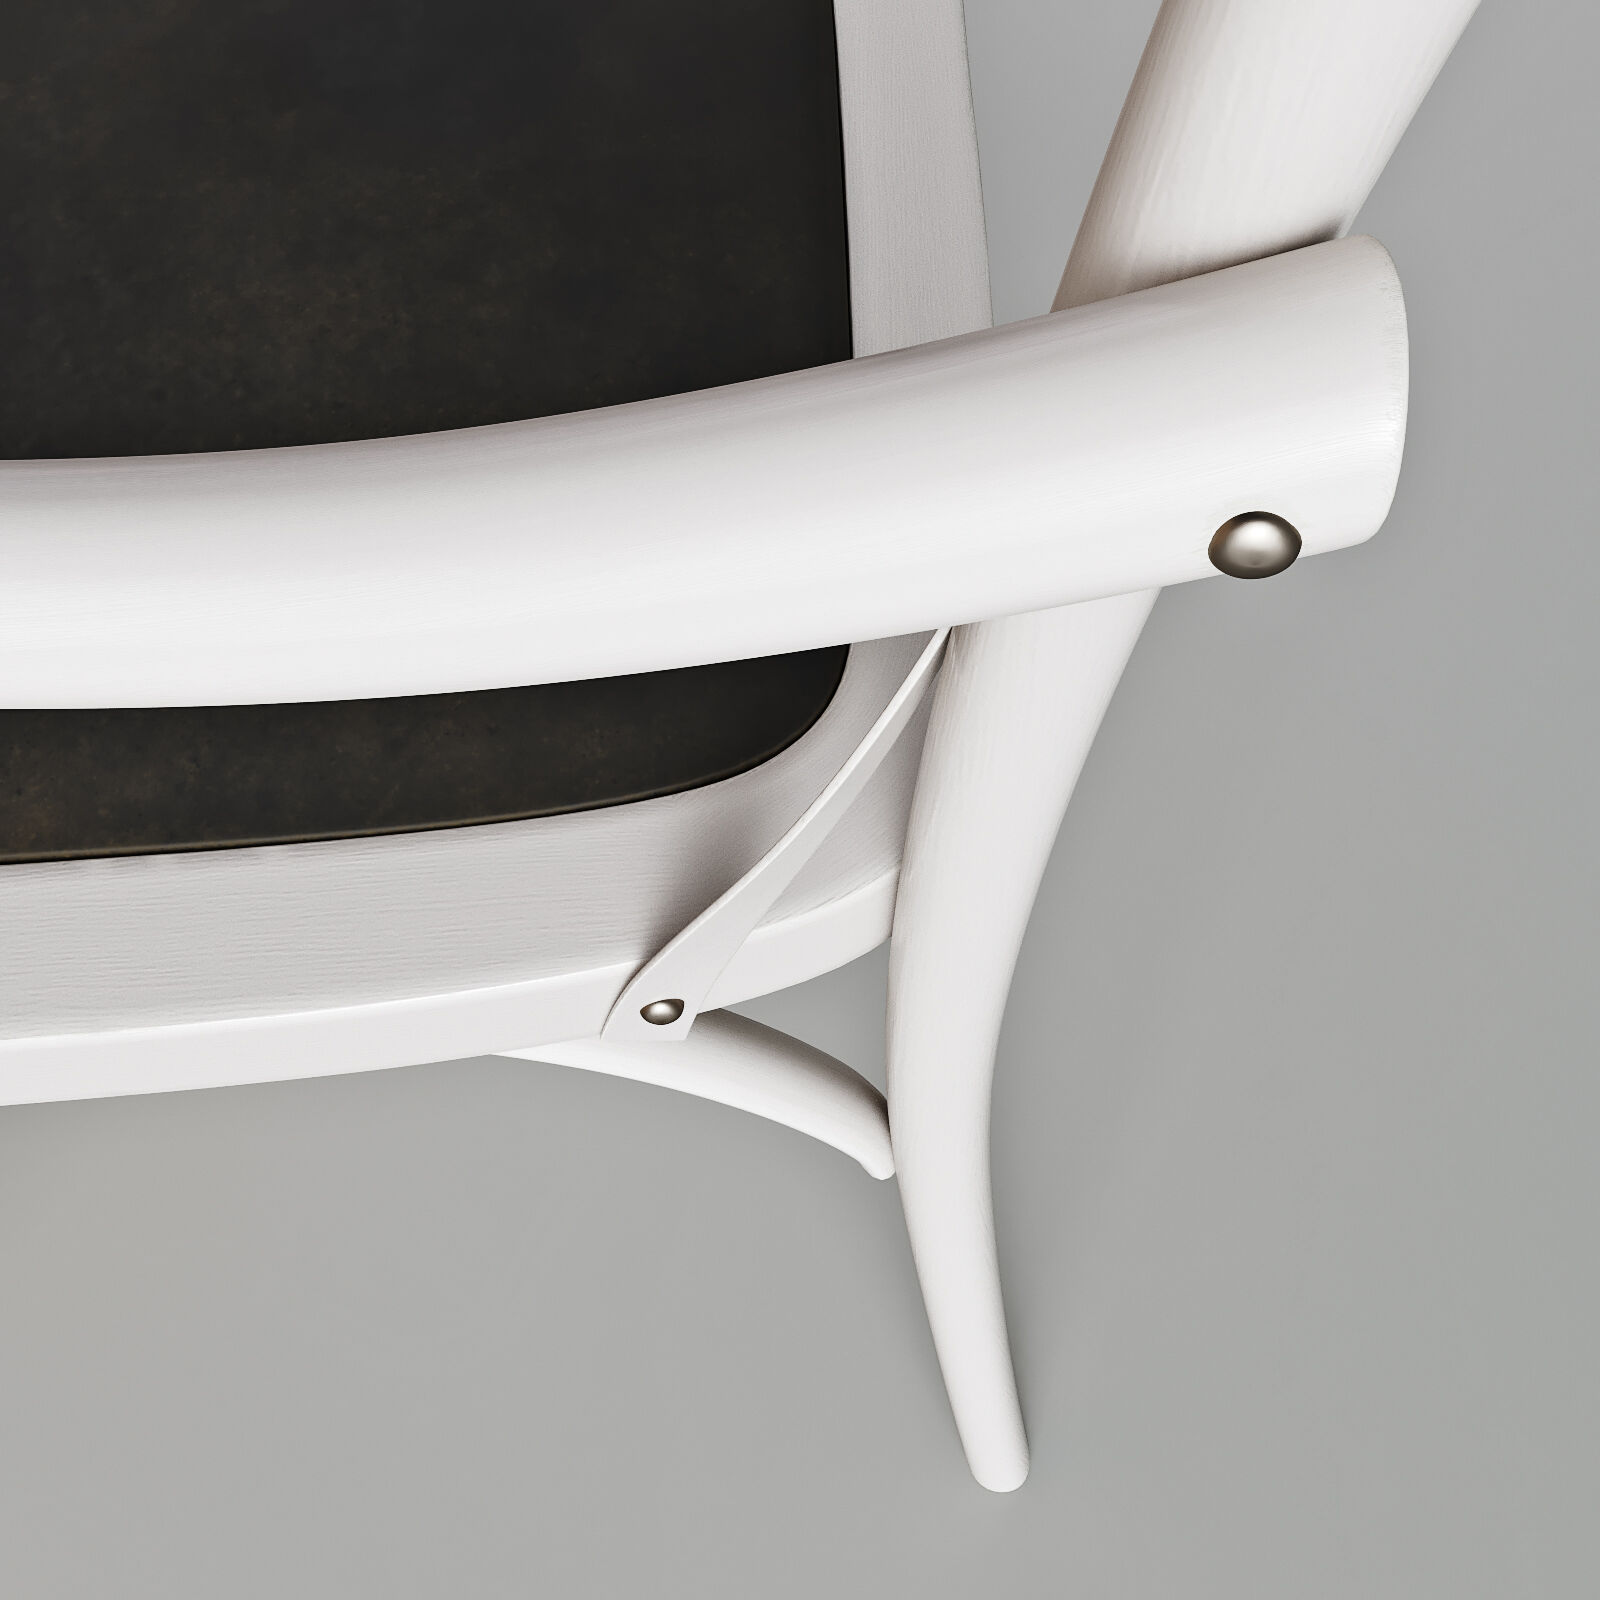 Cross Back Dining Chair With Arms 3d Model Download 3d Model Cross Back Dining Chair With Arms 17720 3dbaza Com